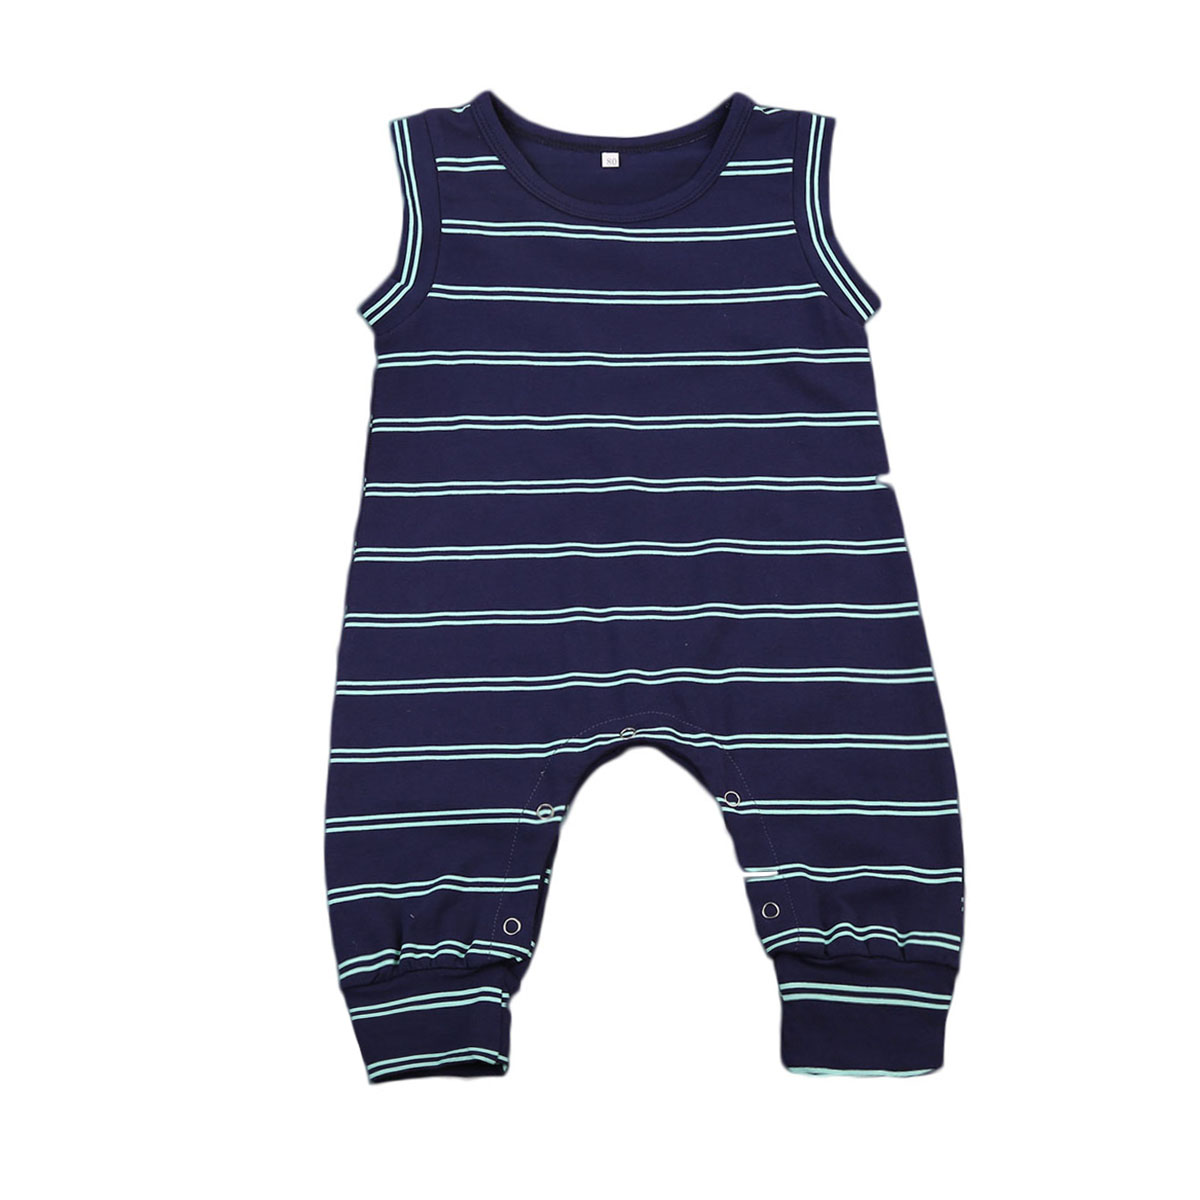 Confident Newborn Baby Girls Boys Stripes Romper Playsuit Summer Casual Clothes Kids Rompers